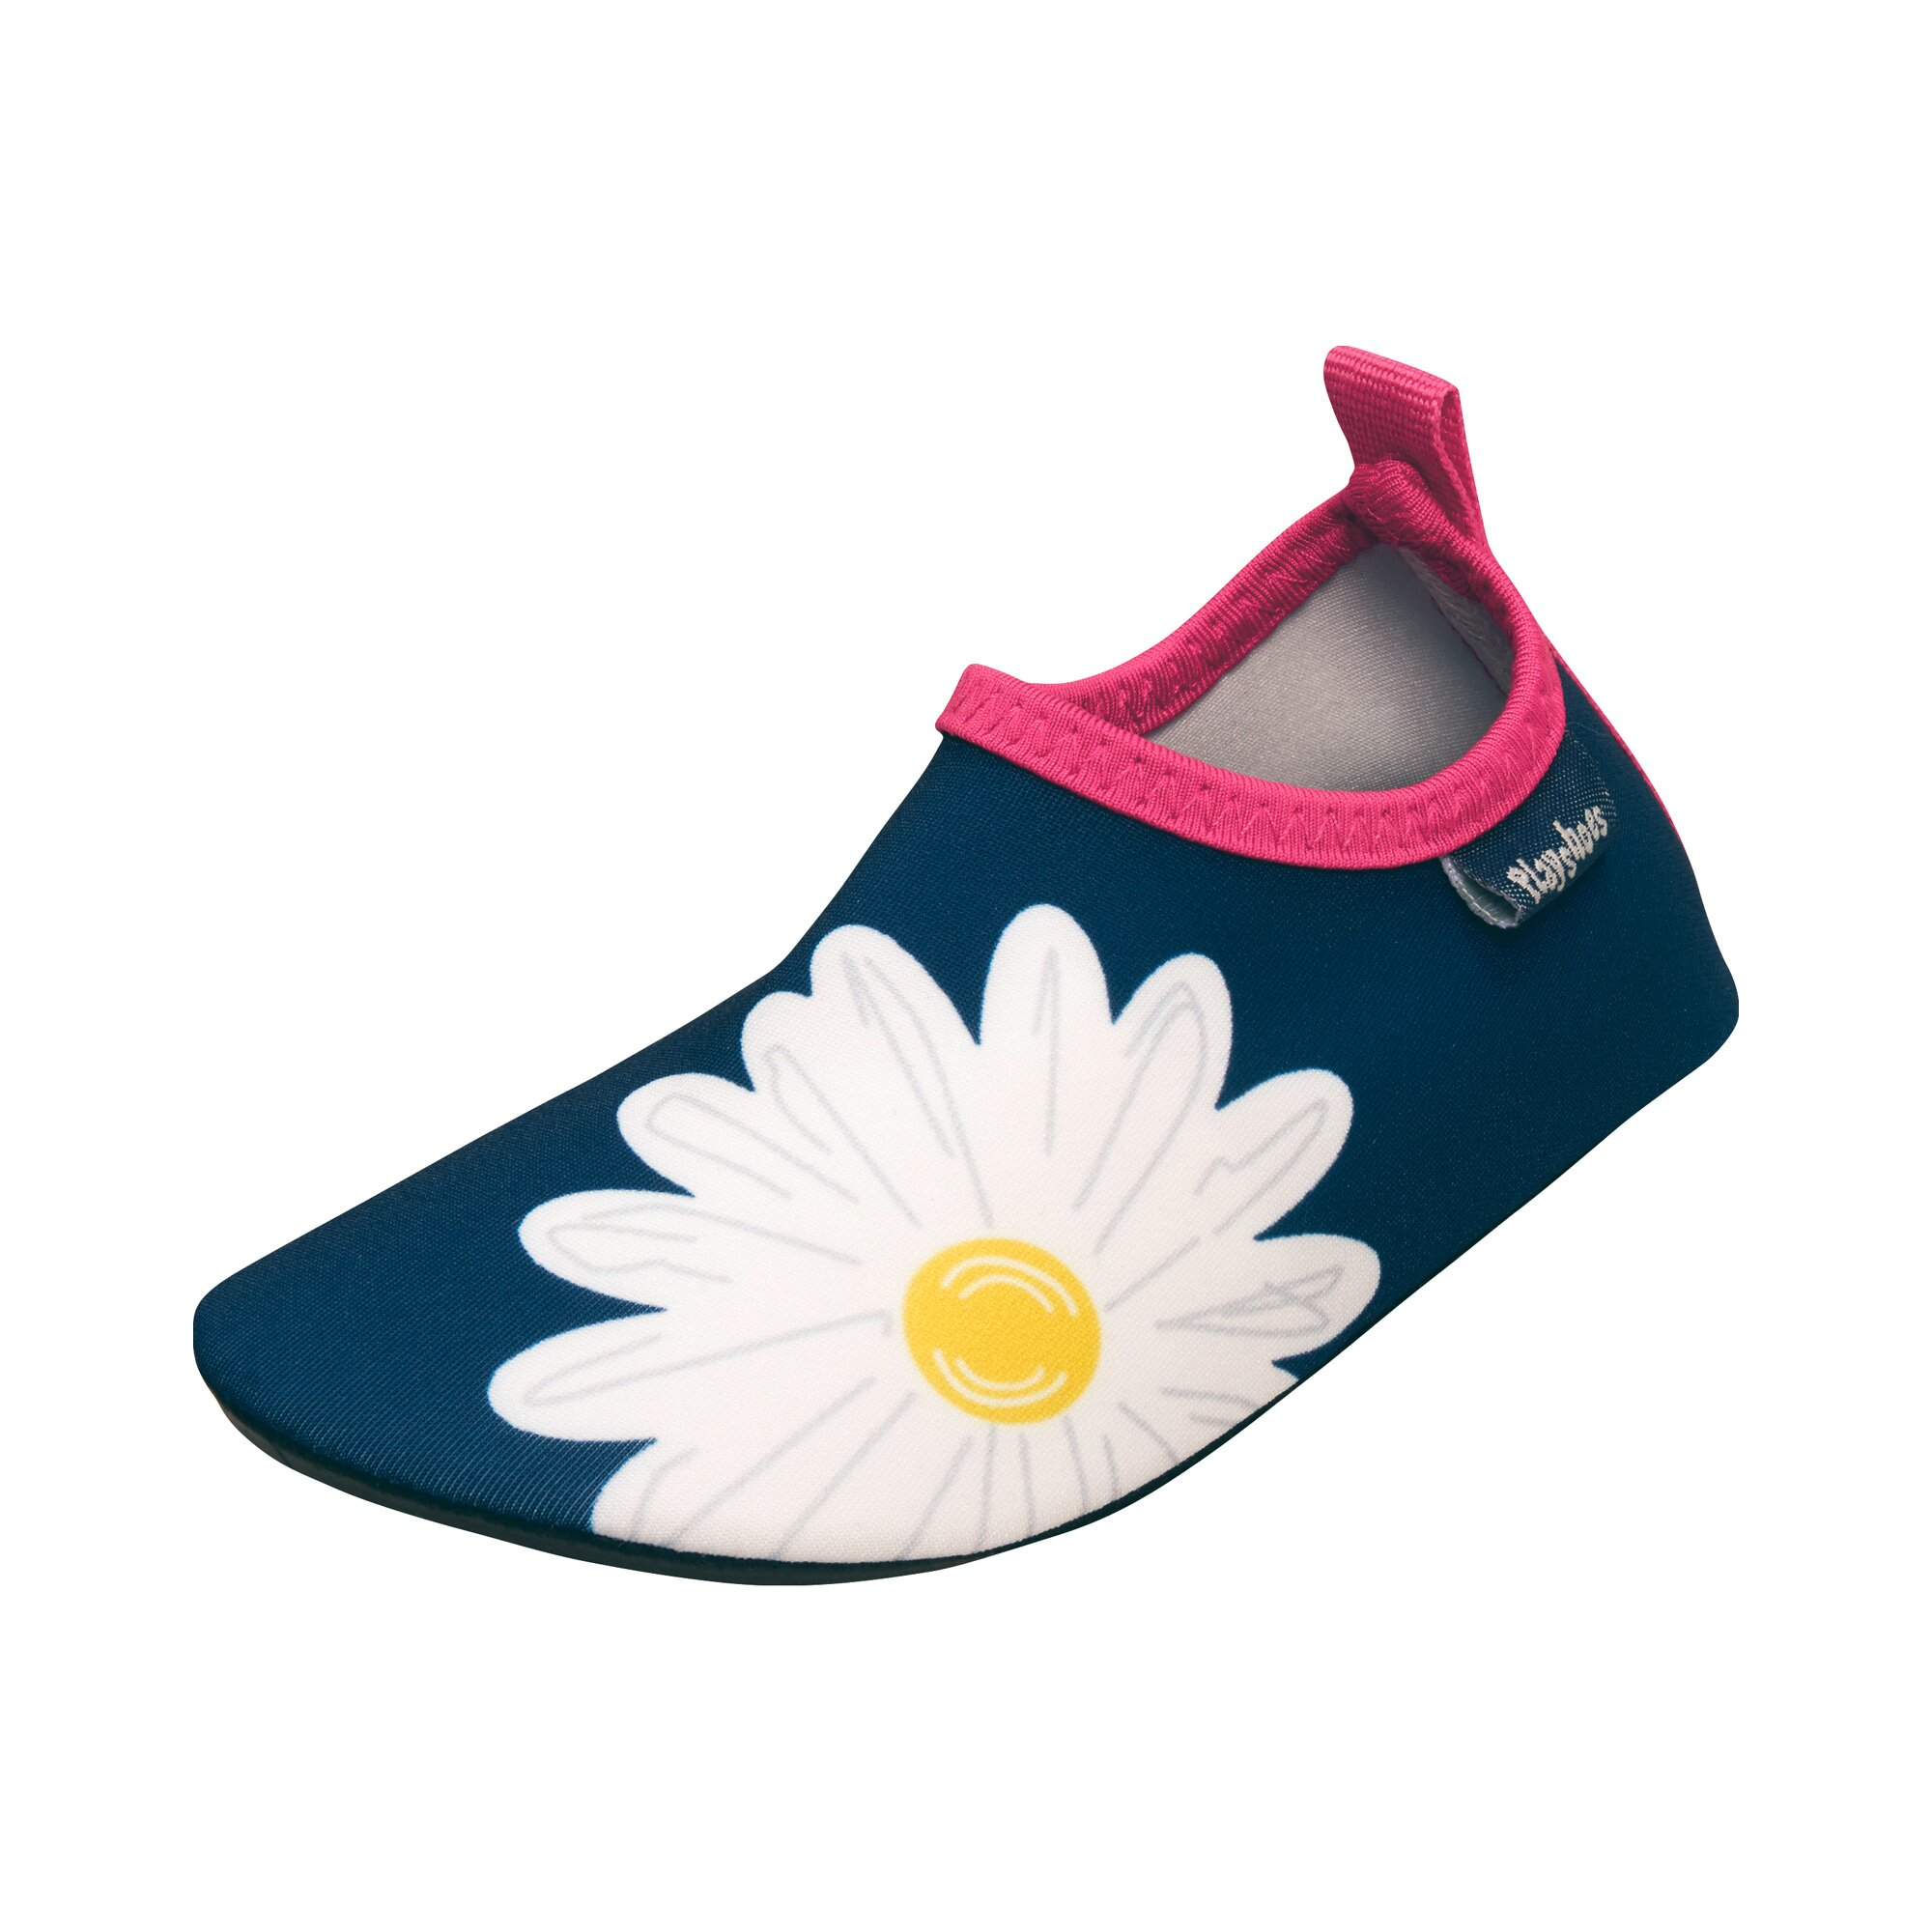 Playshoes Badeschuhe Slipper